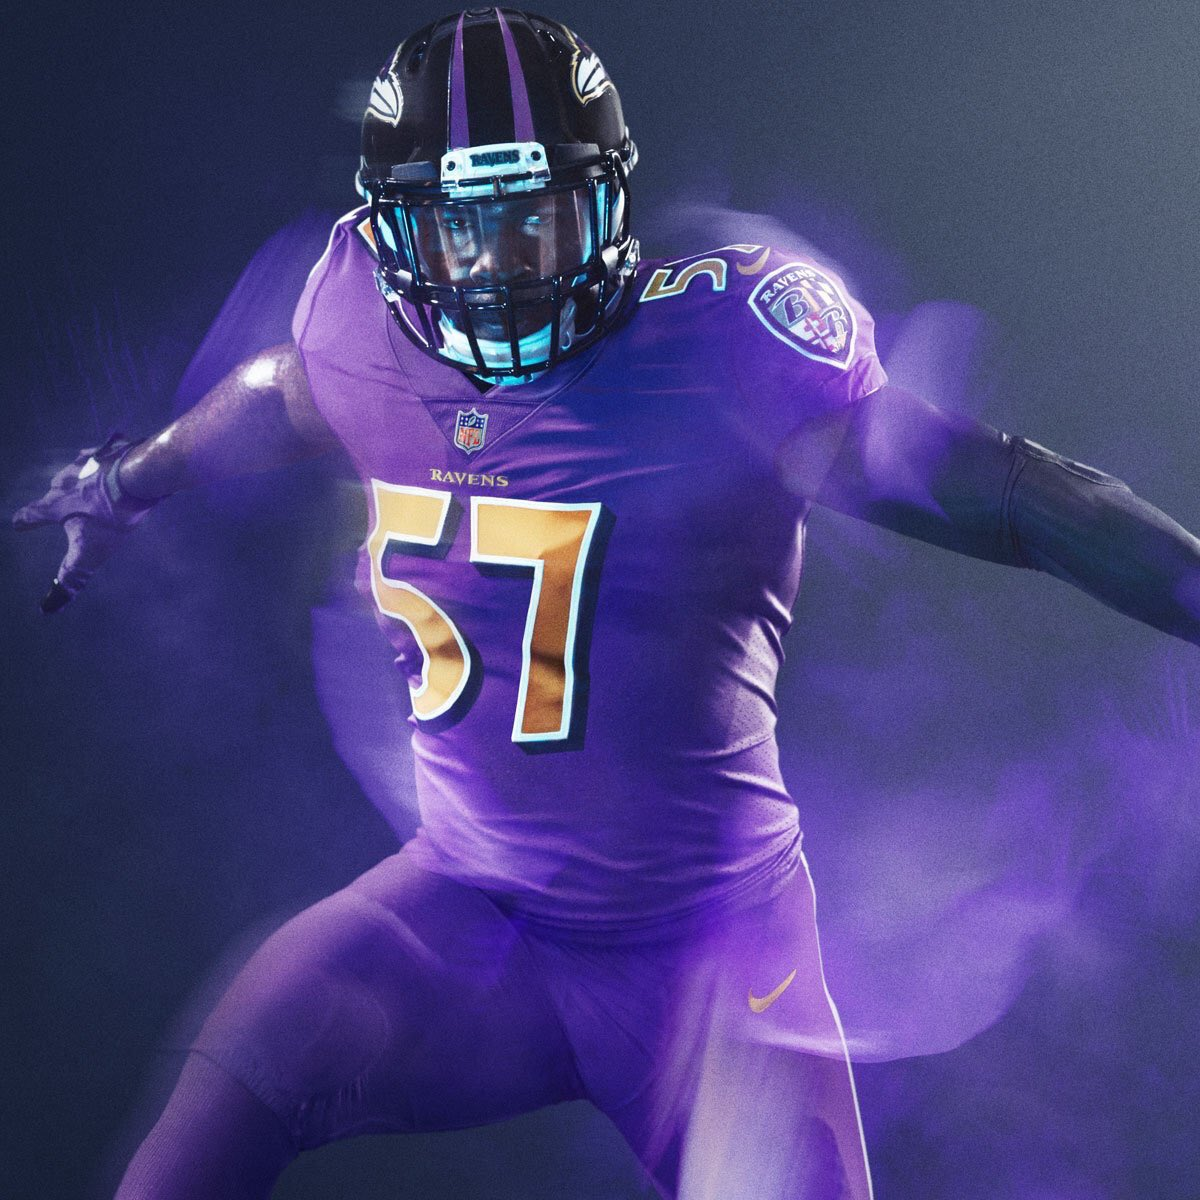 What do you think of the #ColorRush? I like it. #RavensFlock https://t.co/dartTiatWP